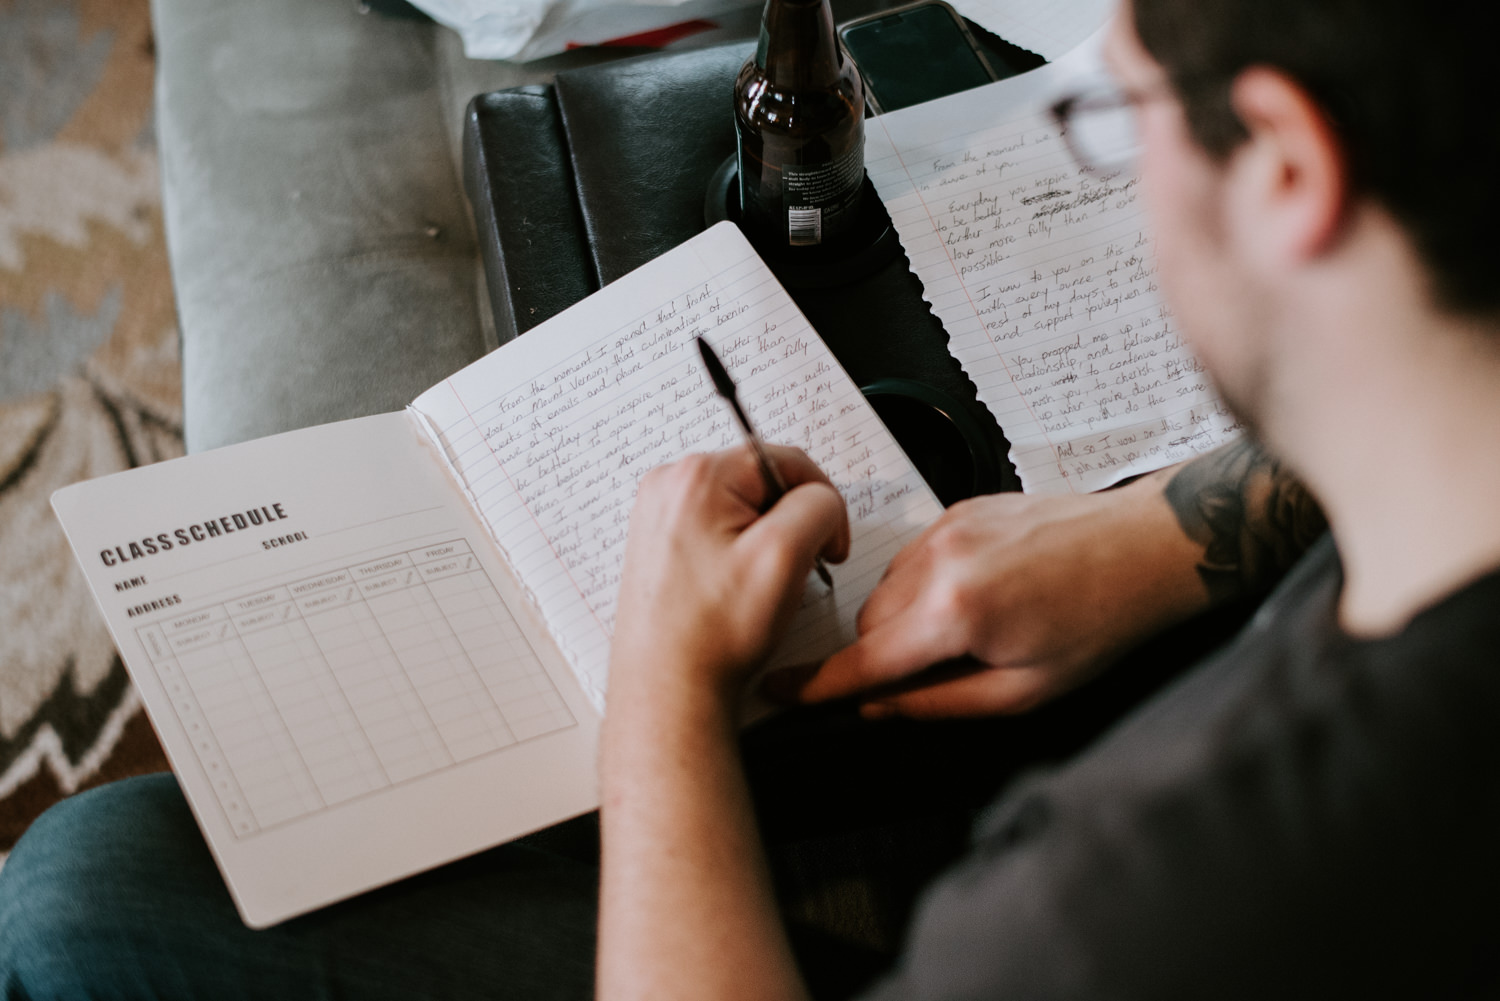 Groom writing vows before wedding ceremony